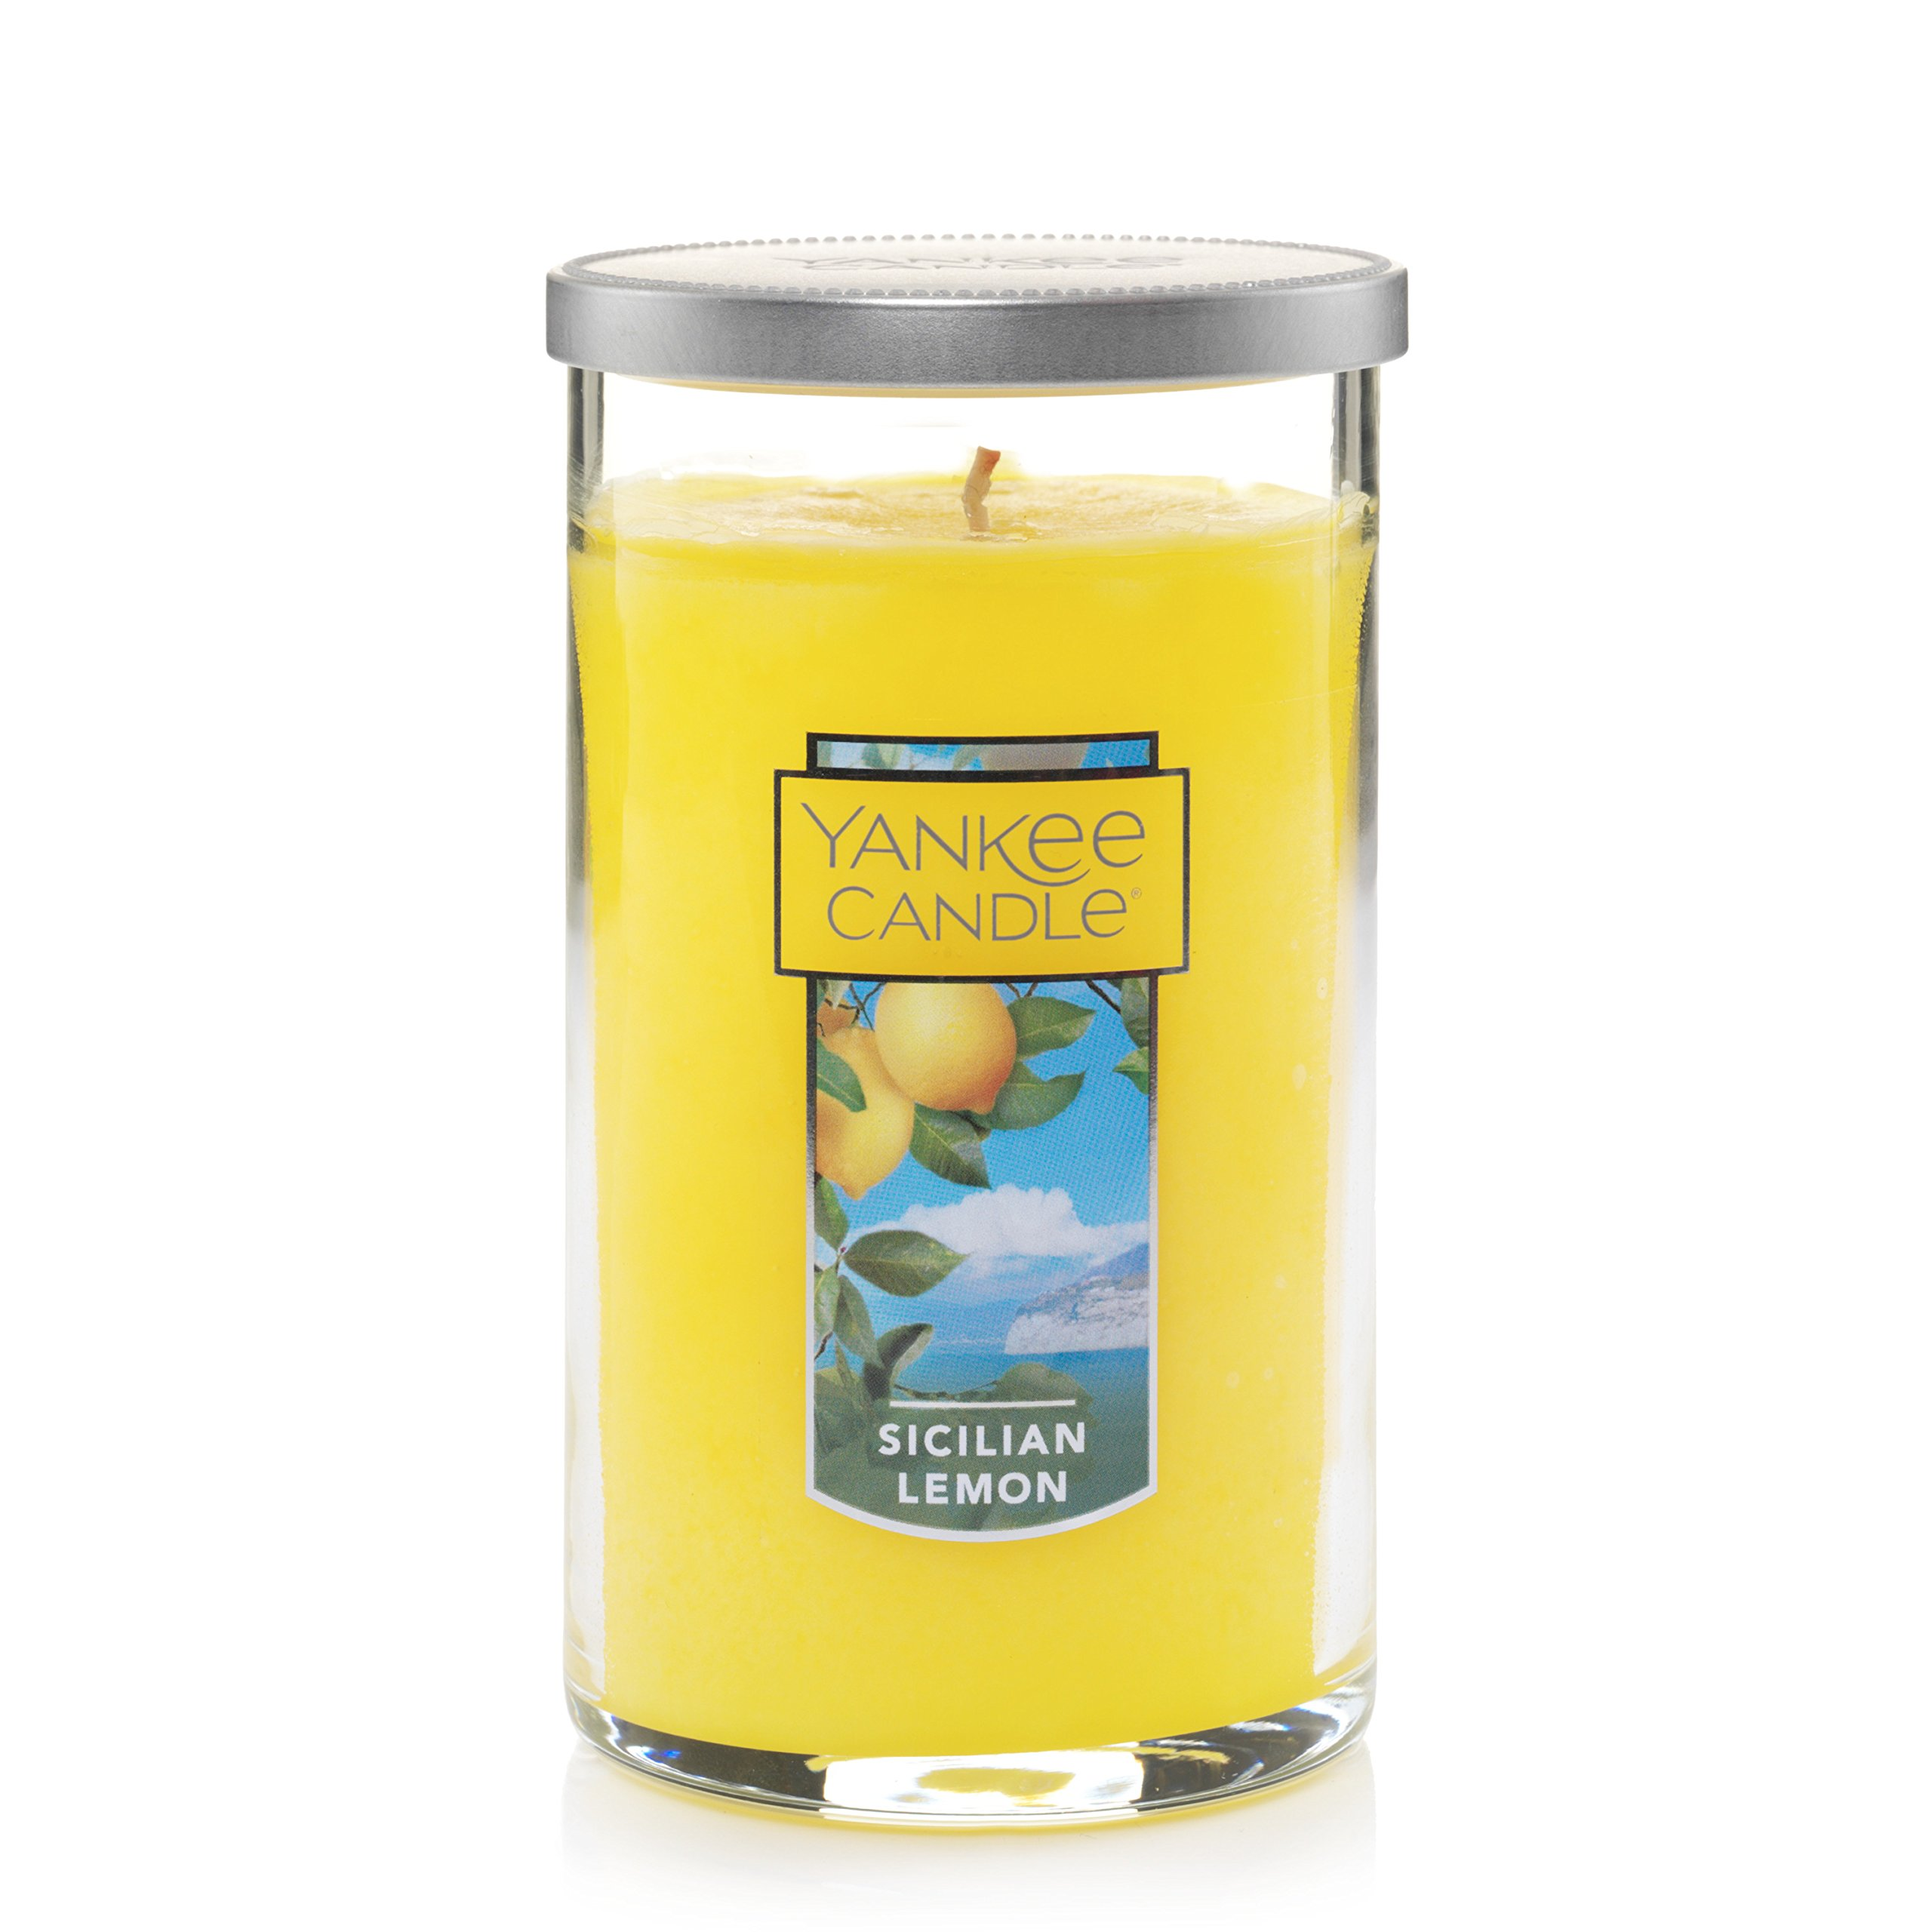 Yankee Candles Sicilian Lemon Medium Perfect Pillar Candle Festive Scent